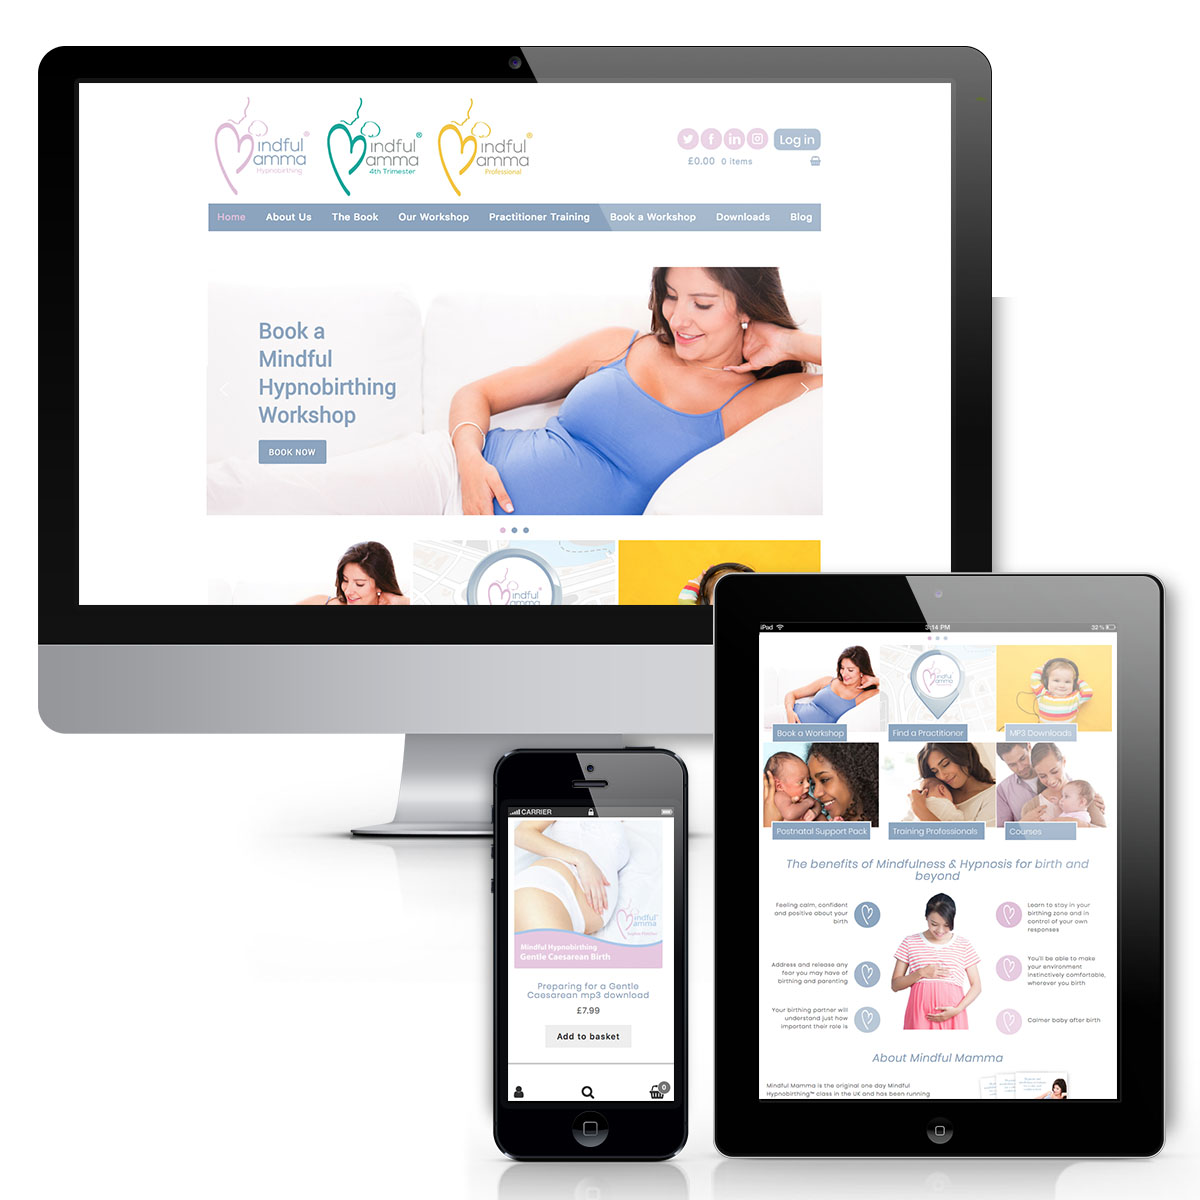 Mindful Mamma web design